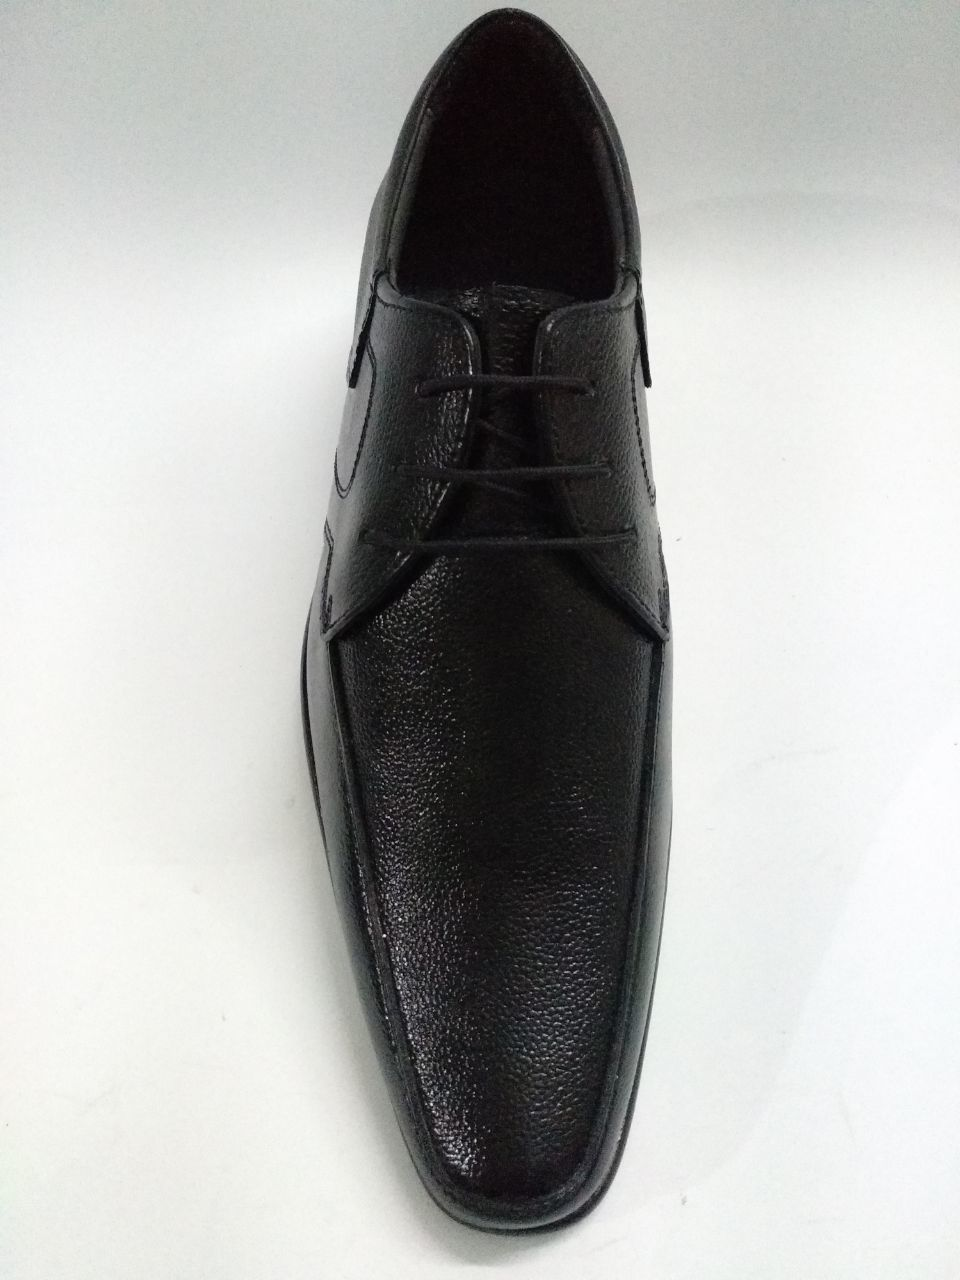 LEATHER FORMAL SHOES FOR MEN'S ON PVC SOLE